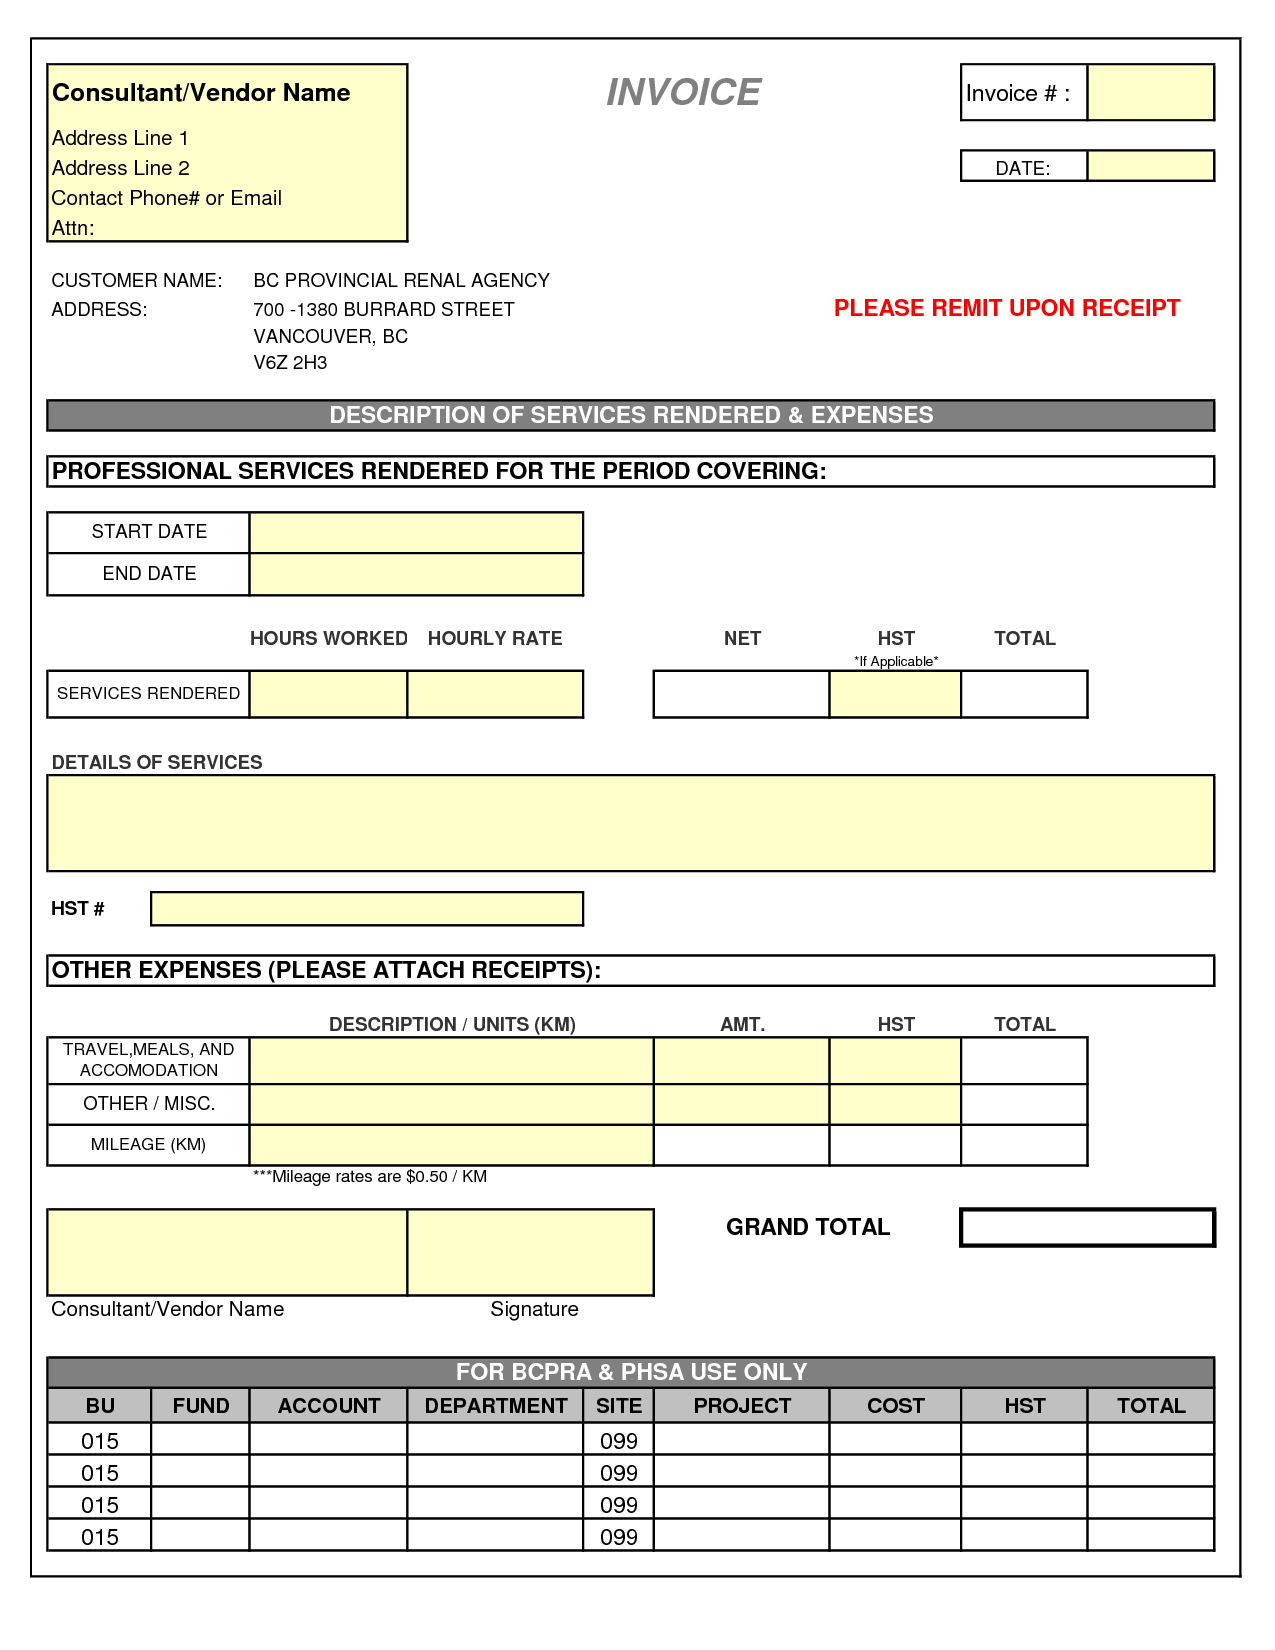 Simple Invoice Template Excel Jongblogcom BddFgQ For Work - Invoice simple vancouver